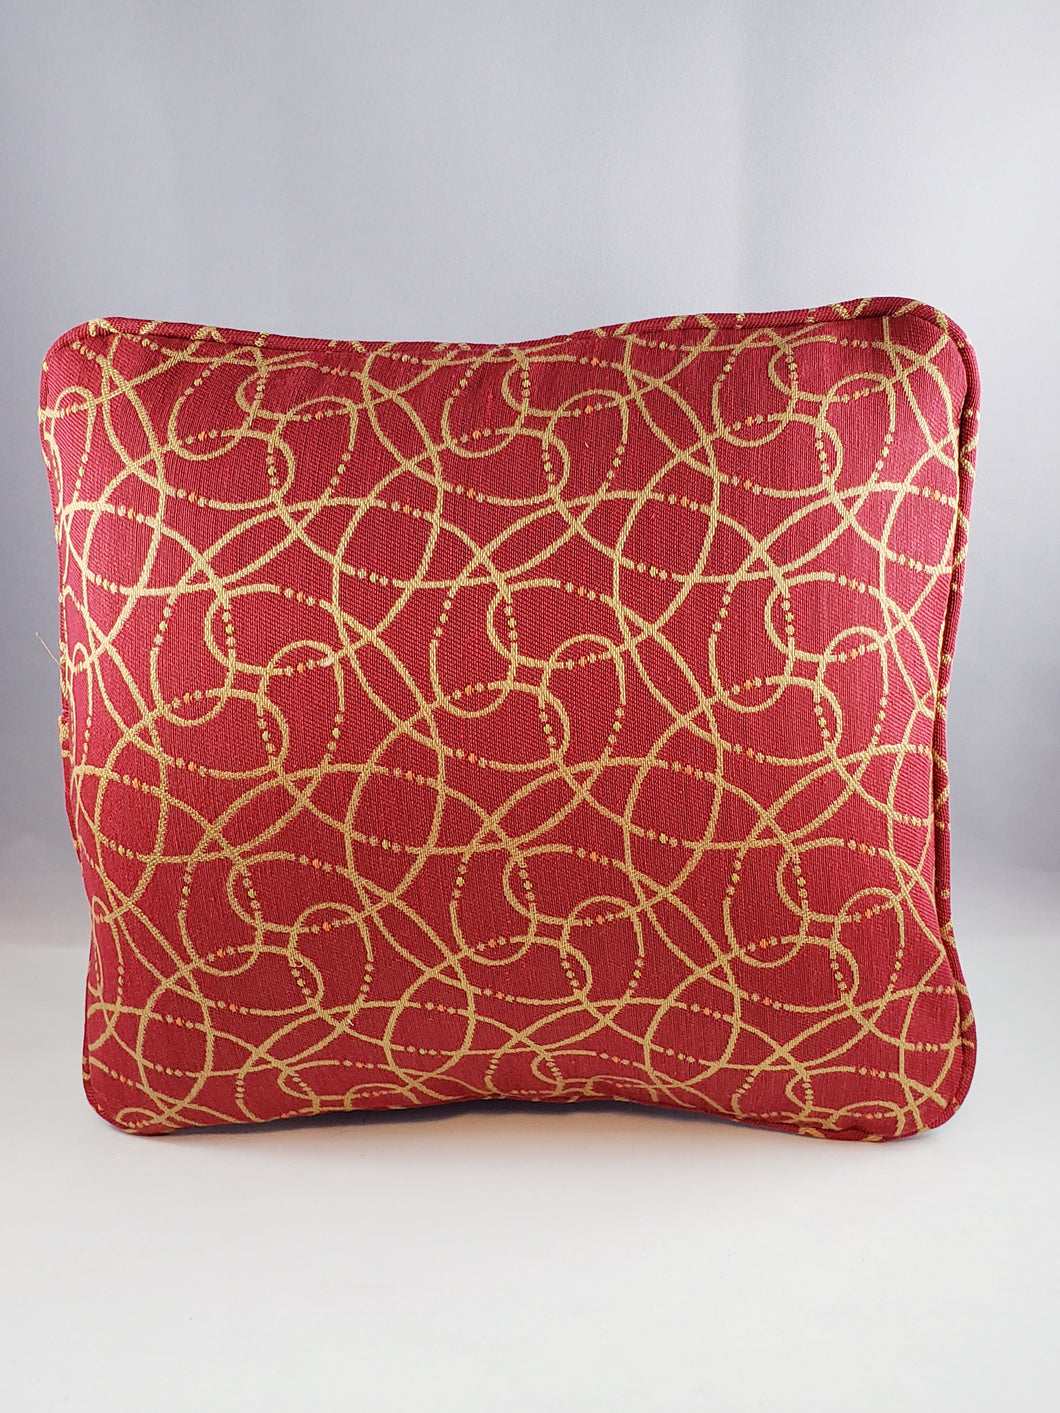 Red with Beige Swirls pattern Comfee Cushion